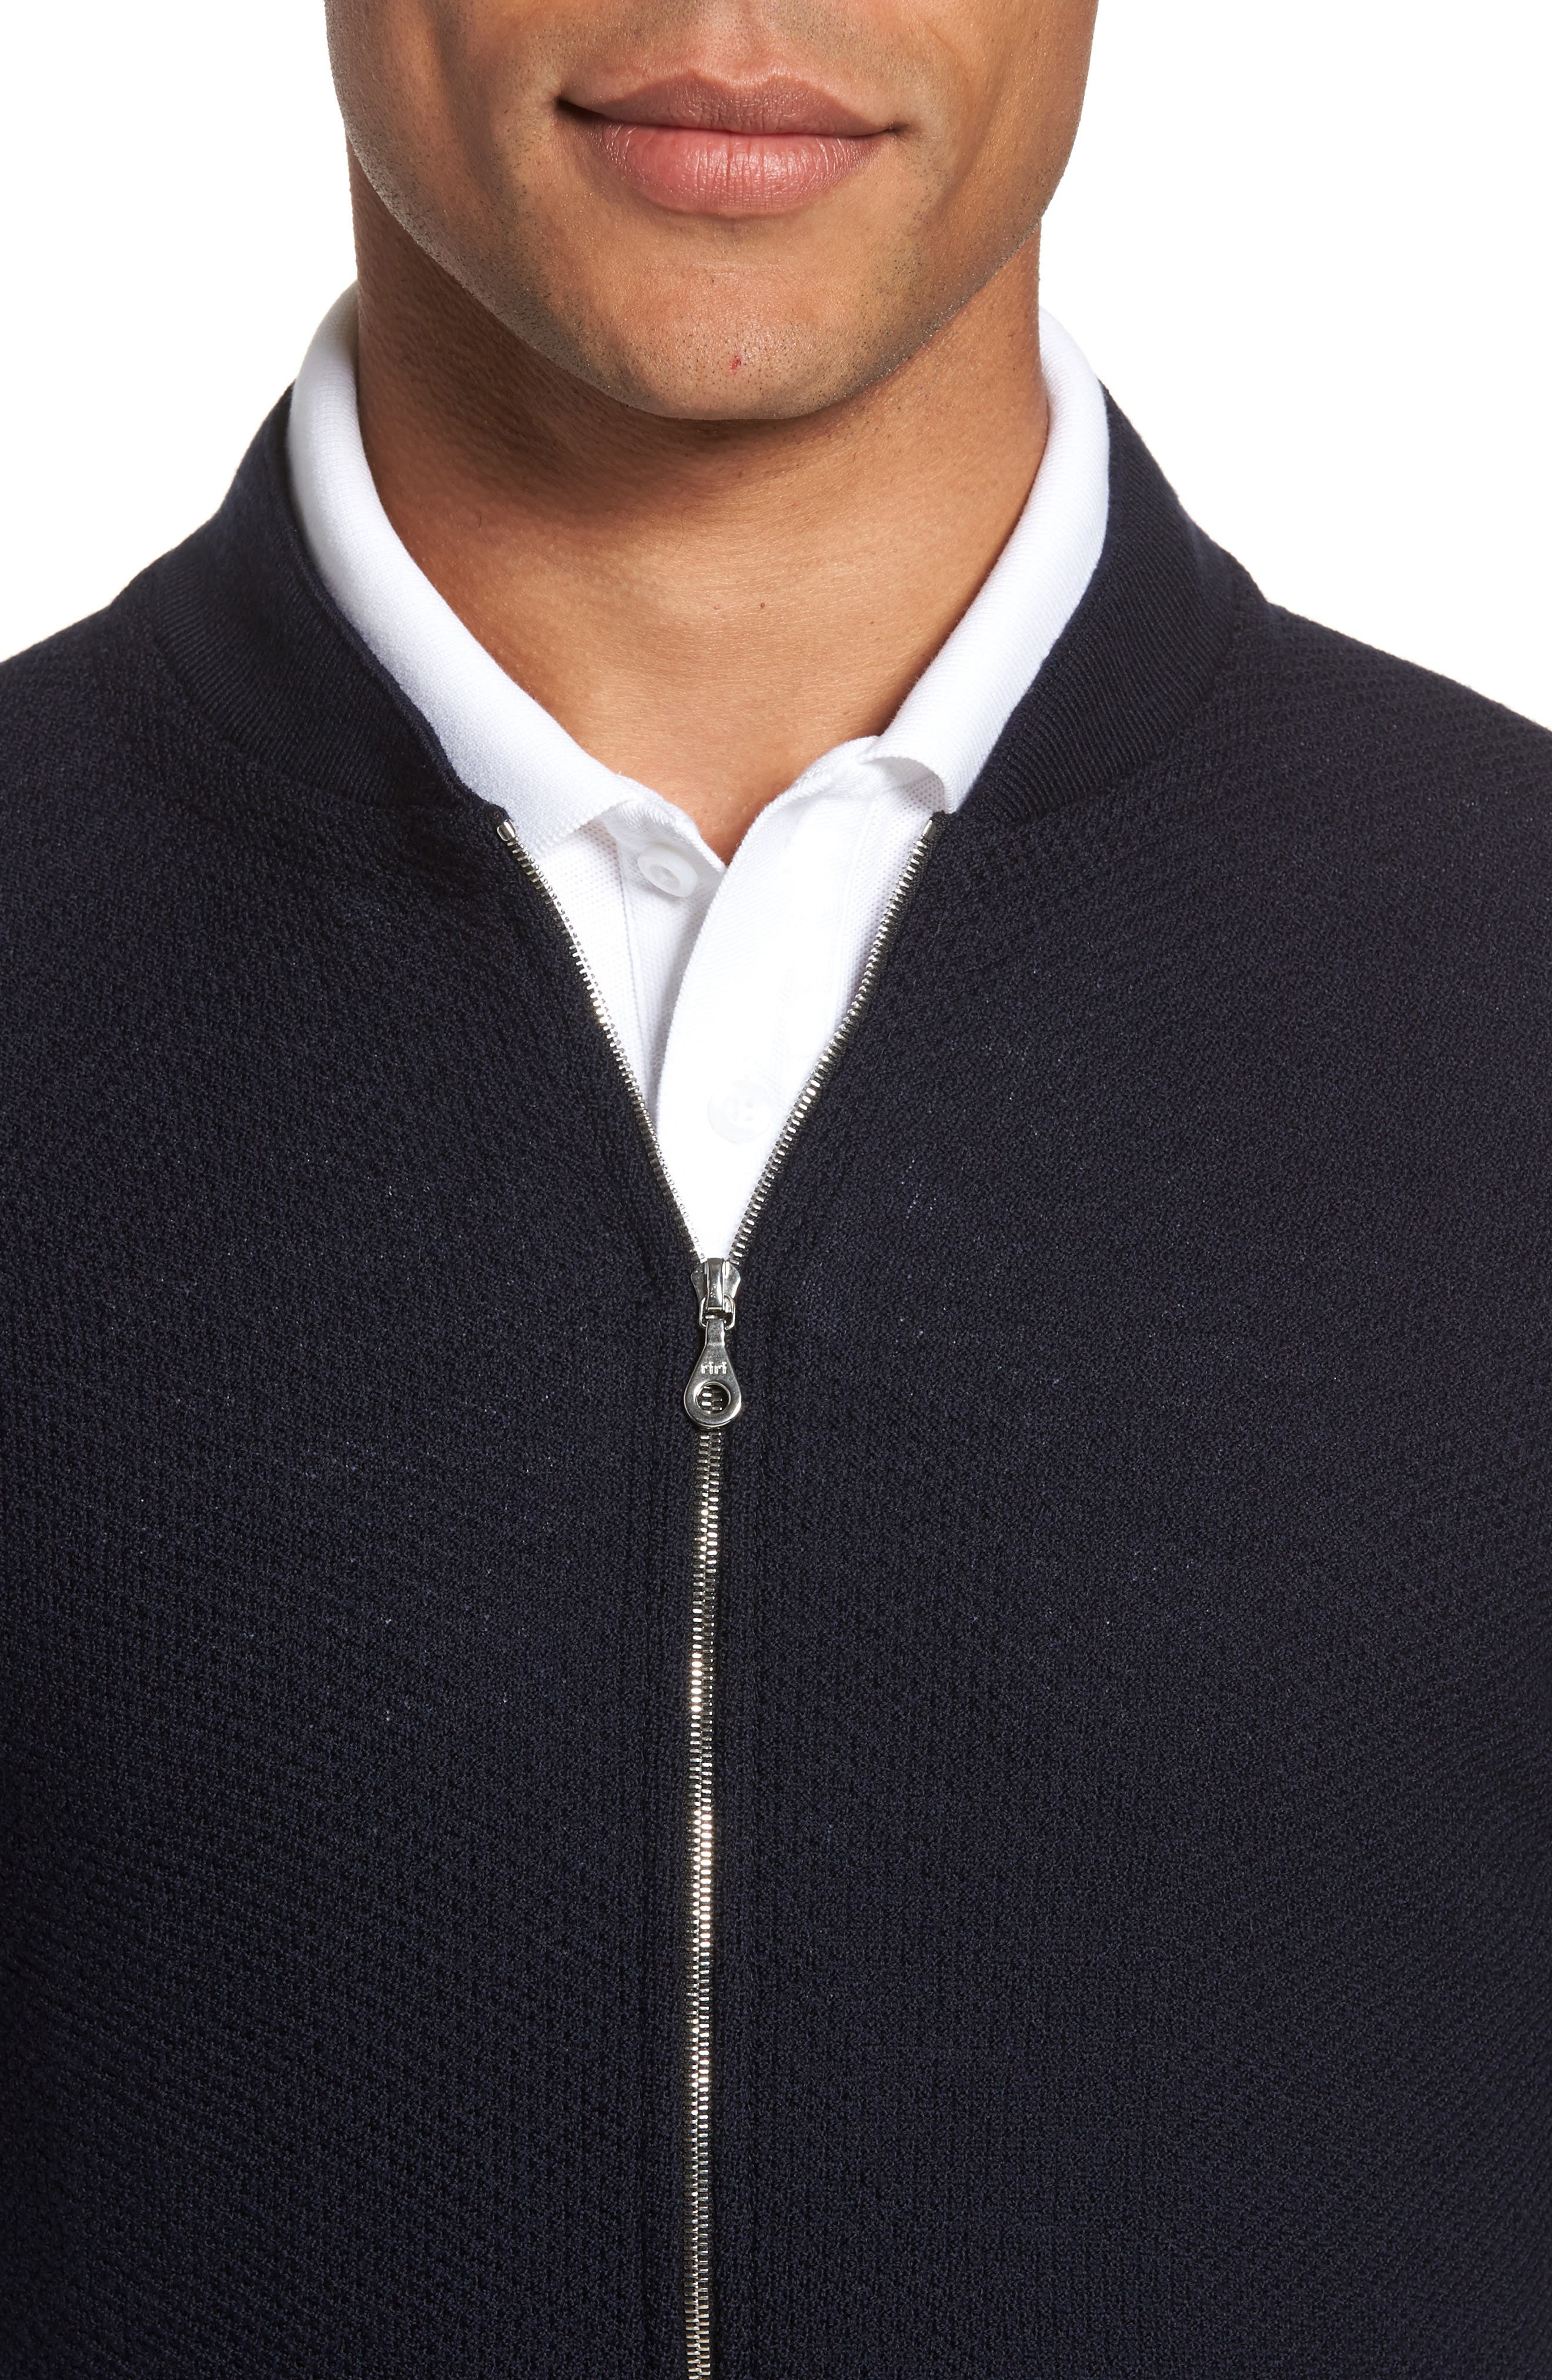 Standard Fit Merino Wool Knit Jacket,                             Alternate thumbnail 4, color,                             499